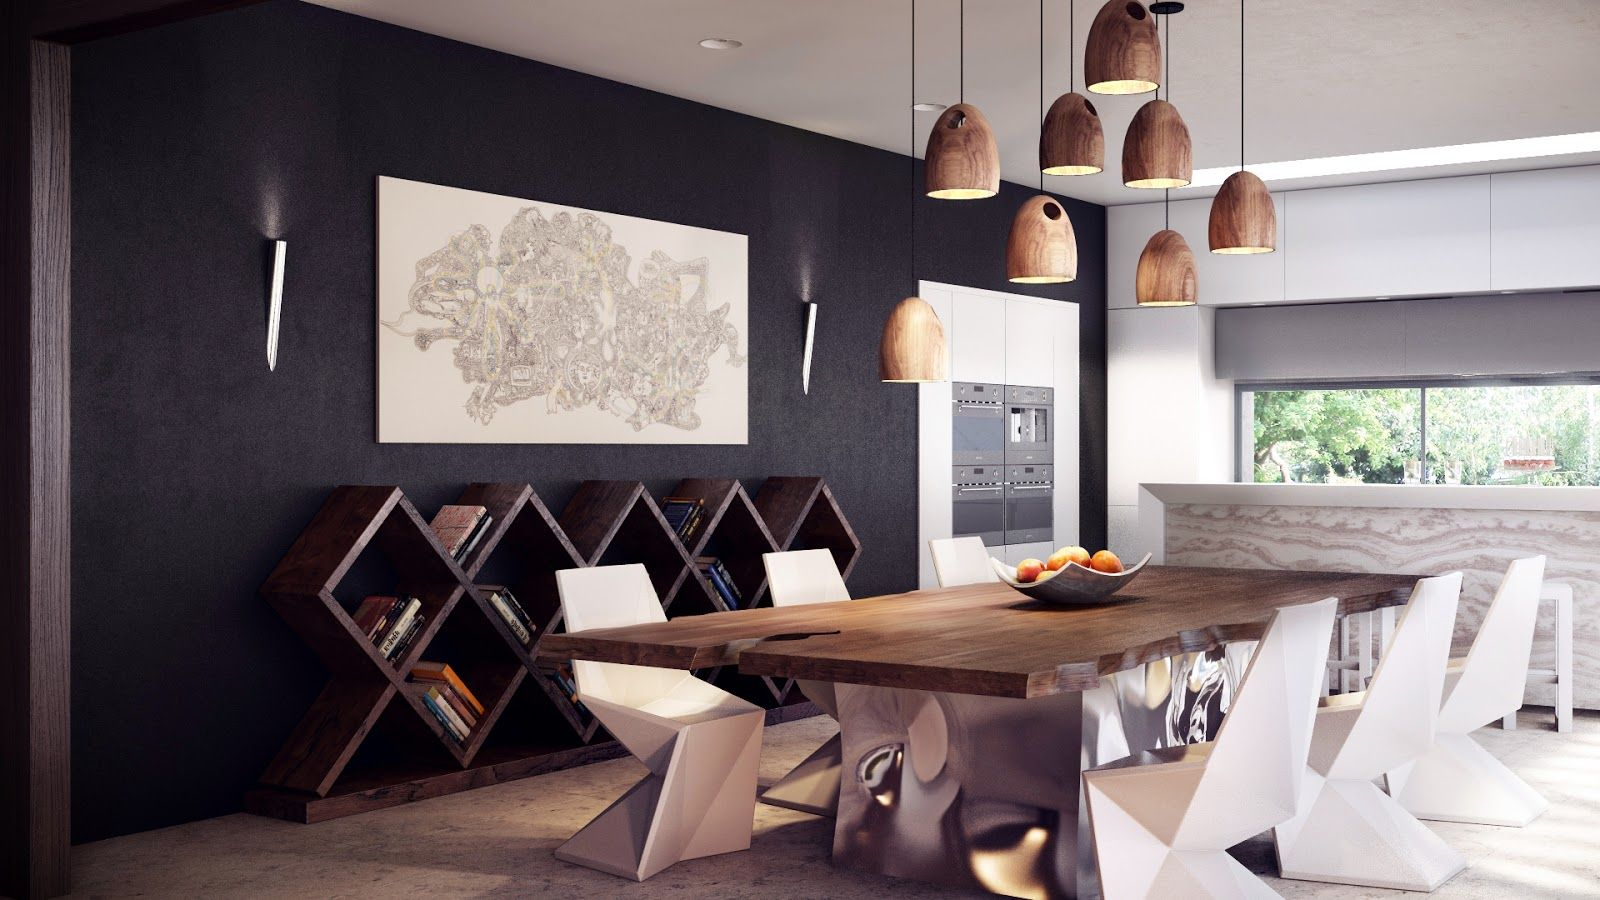 Dining Room Design Idea This Contemporary Dining Room Has As A Center Piece A Table Rustic Dining Room Table Rustic Dining Room Sets Modern Dining Room Tables